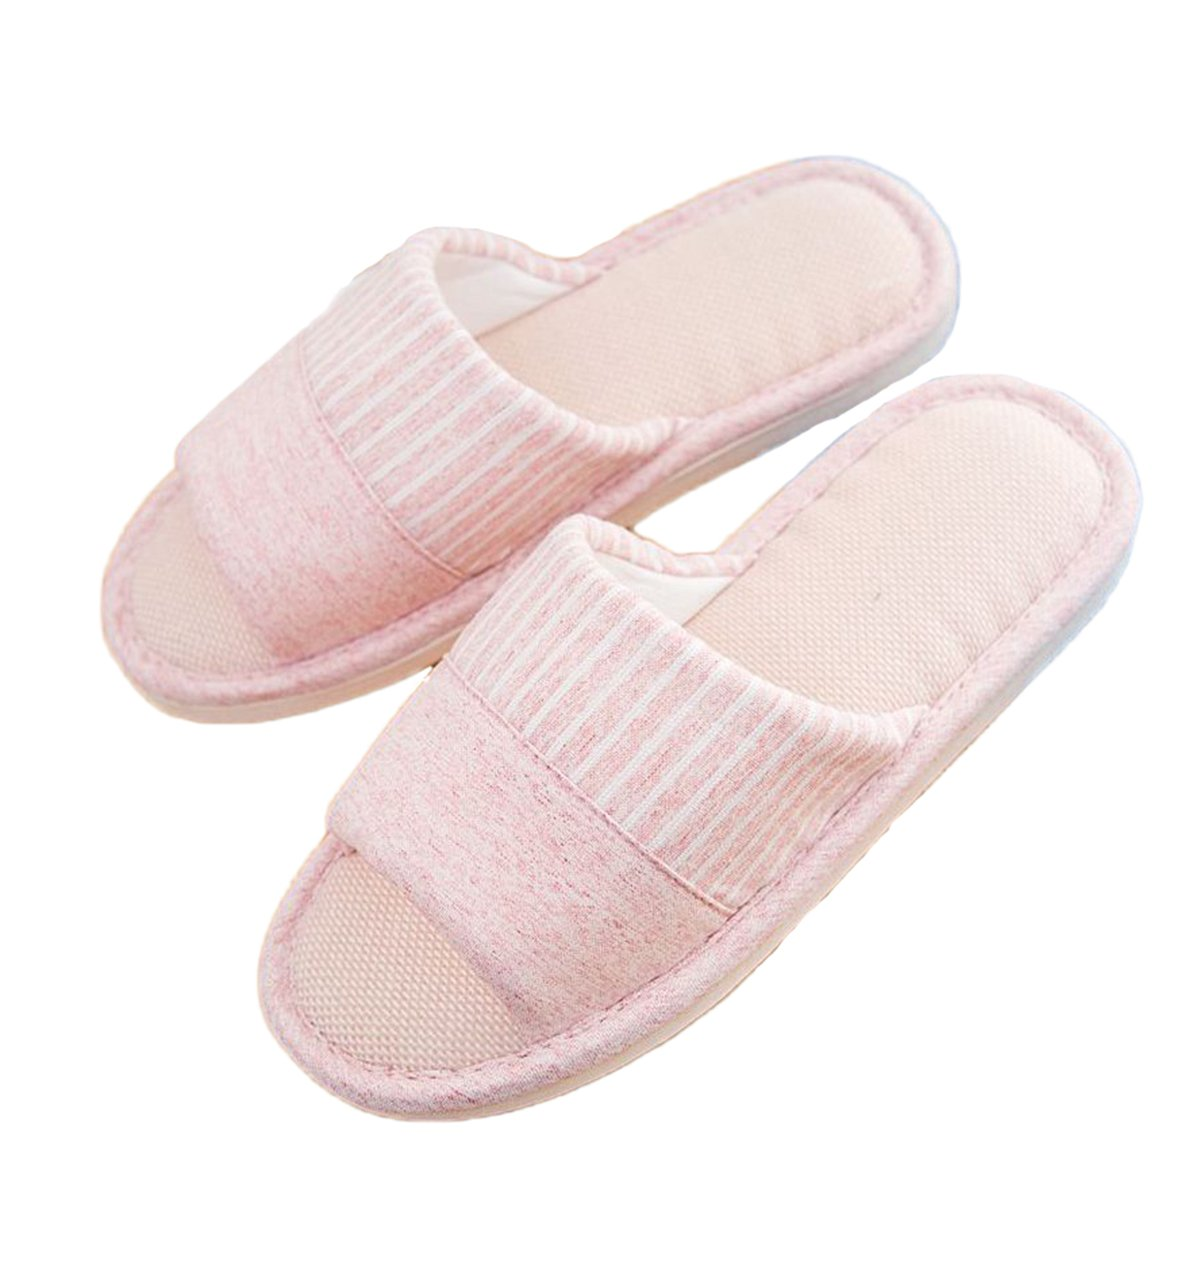 xsby Cotton Flip Flop Slippers, Women's Cozy Memory Foam Spa Thong Flip Flops Clog Style House Indoor Slippers Pink-C 38-39